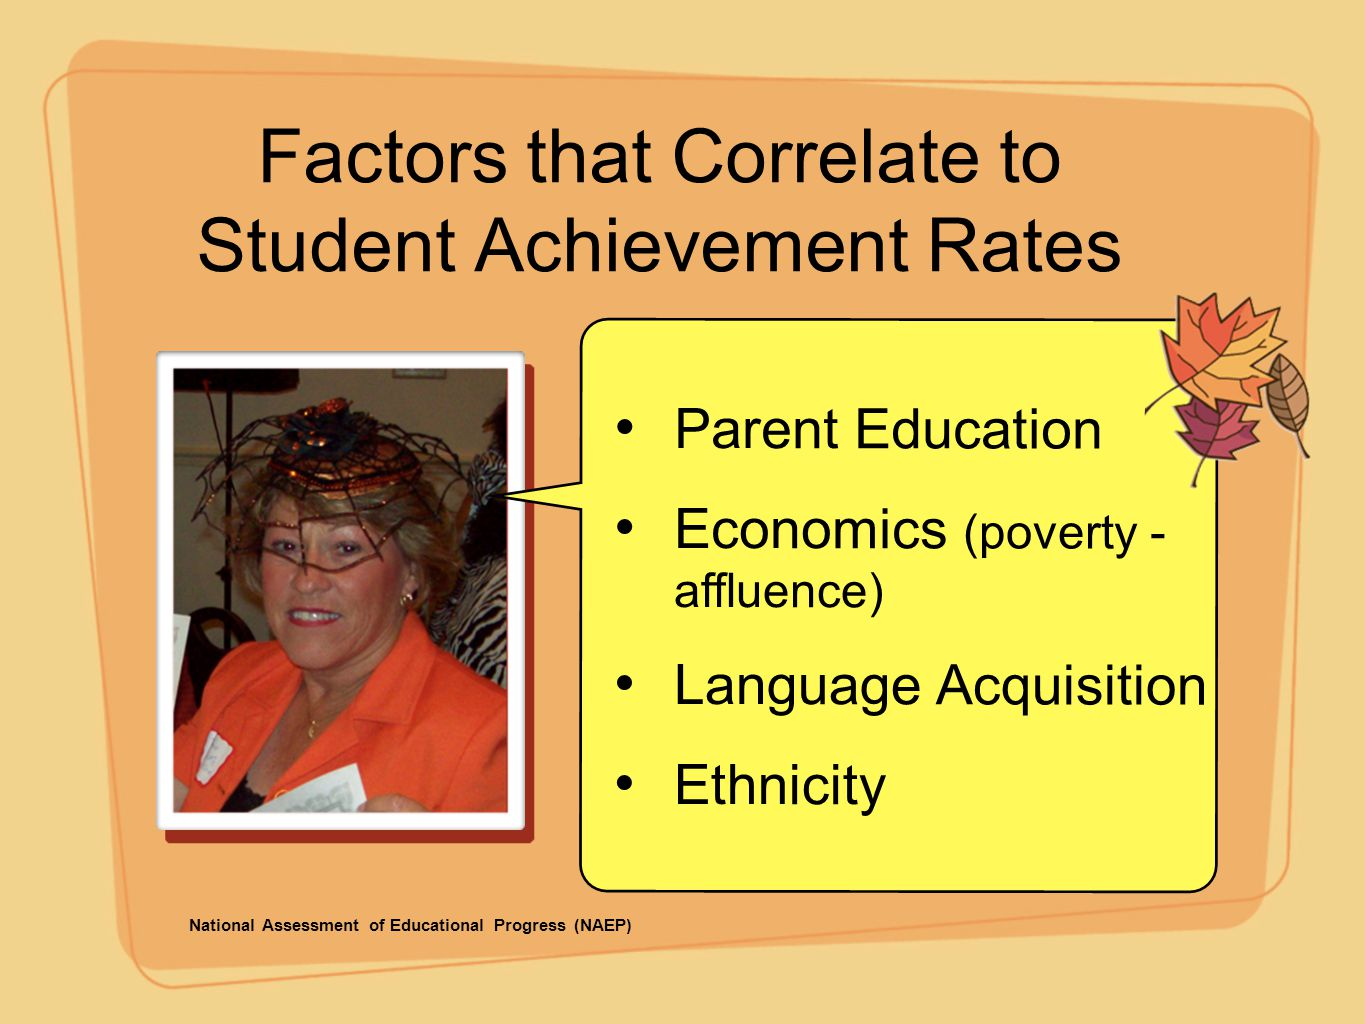 Factors that Correlate to Student Achievement Rates